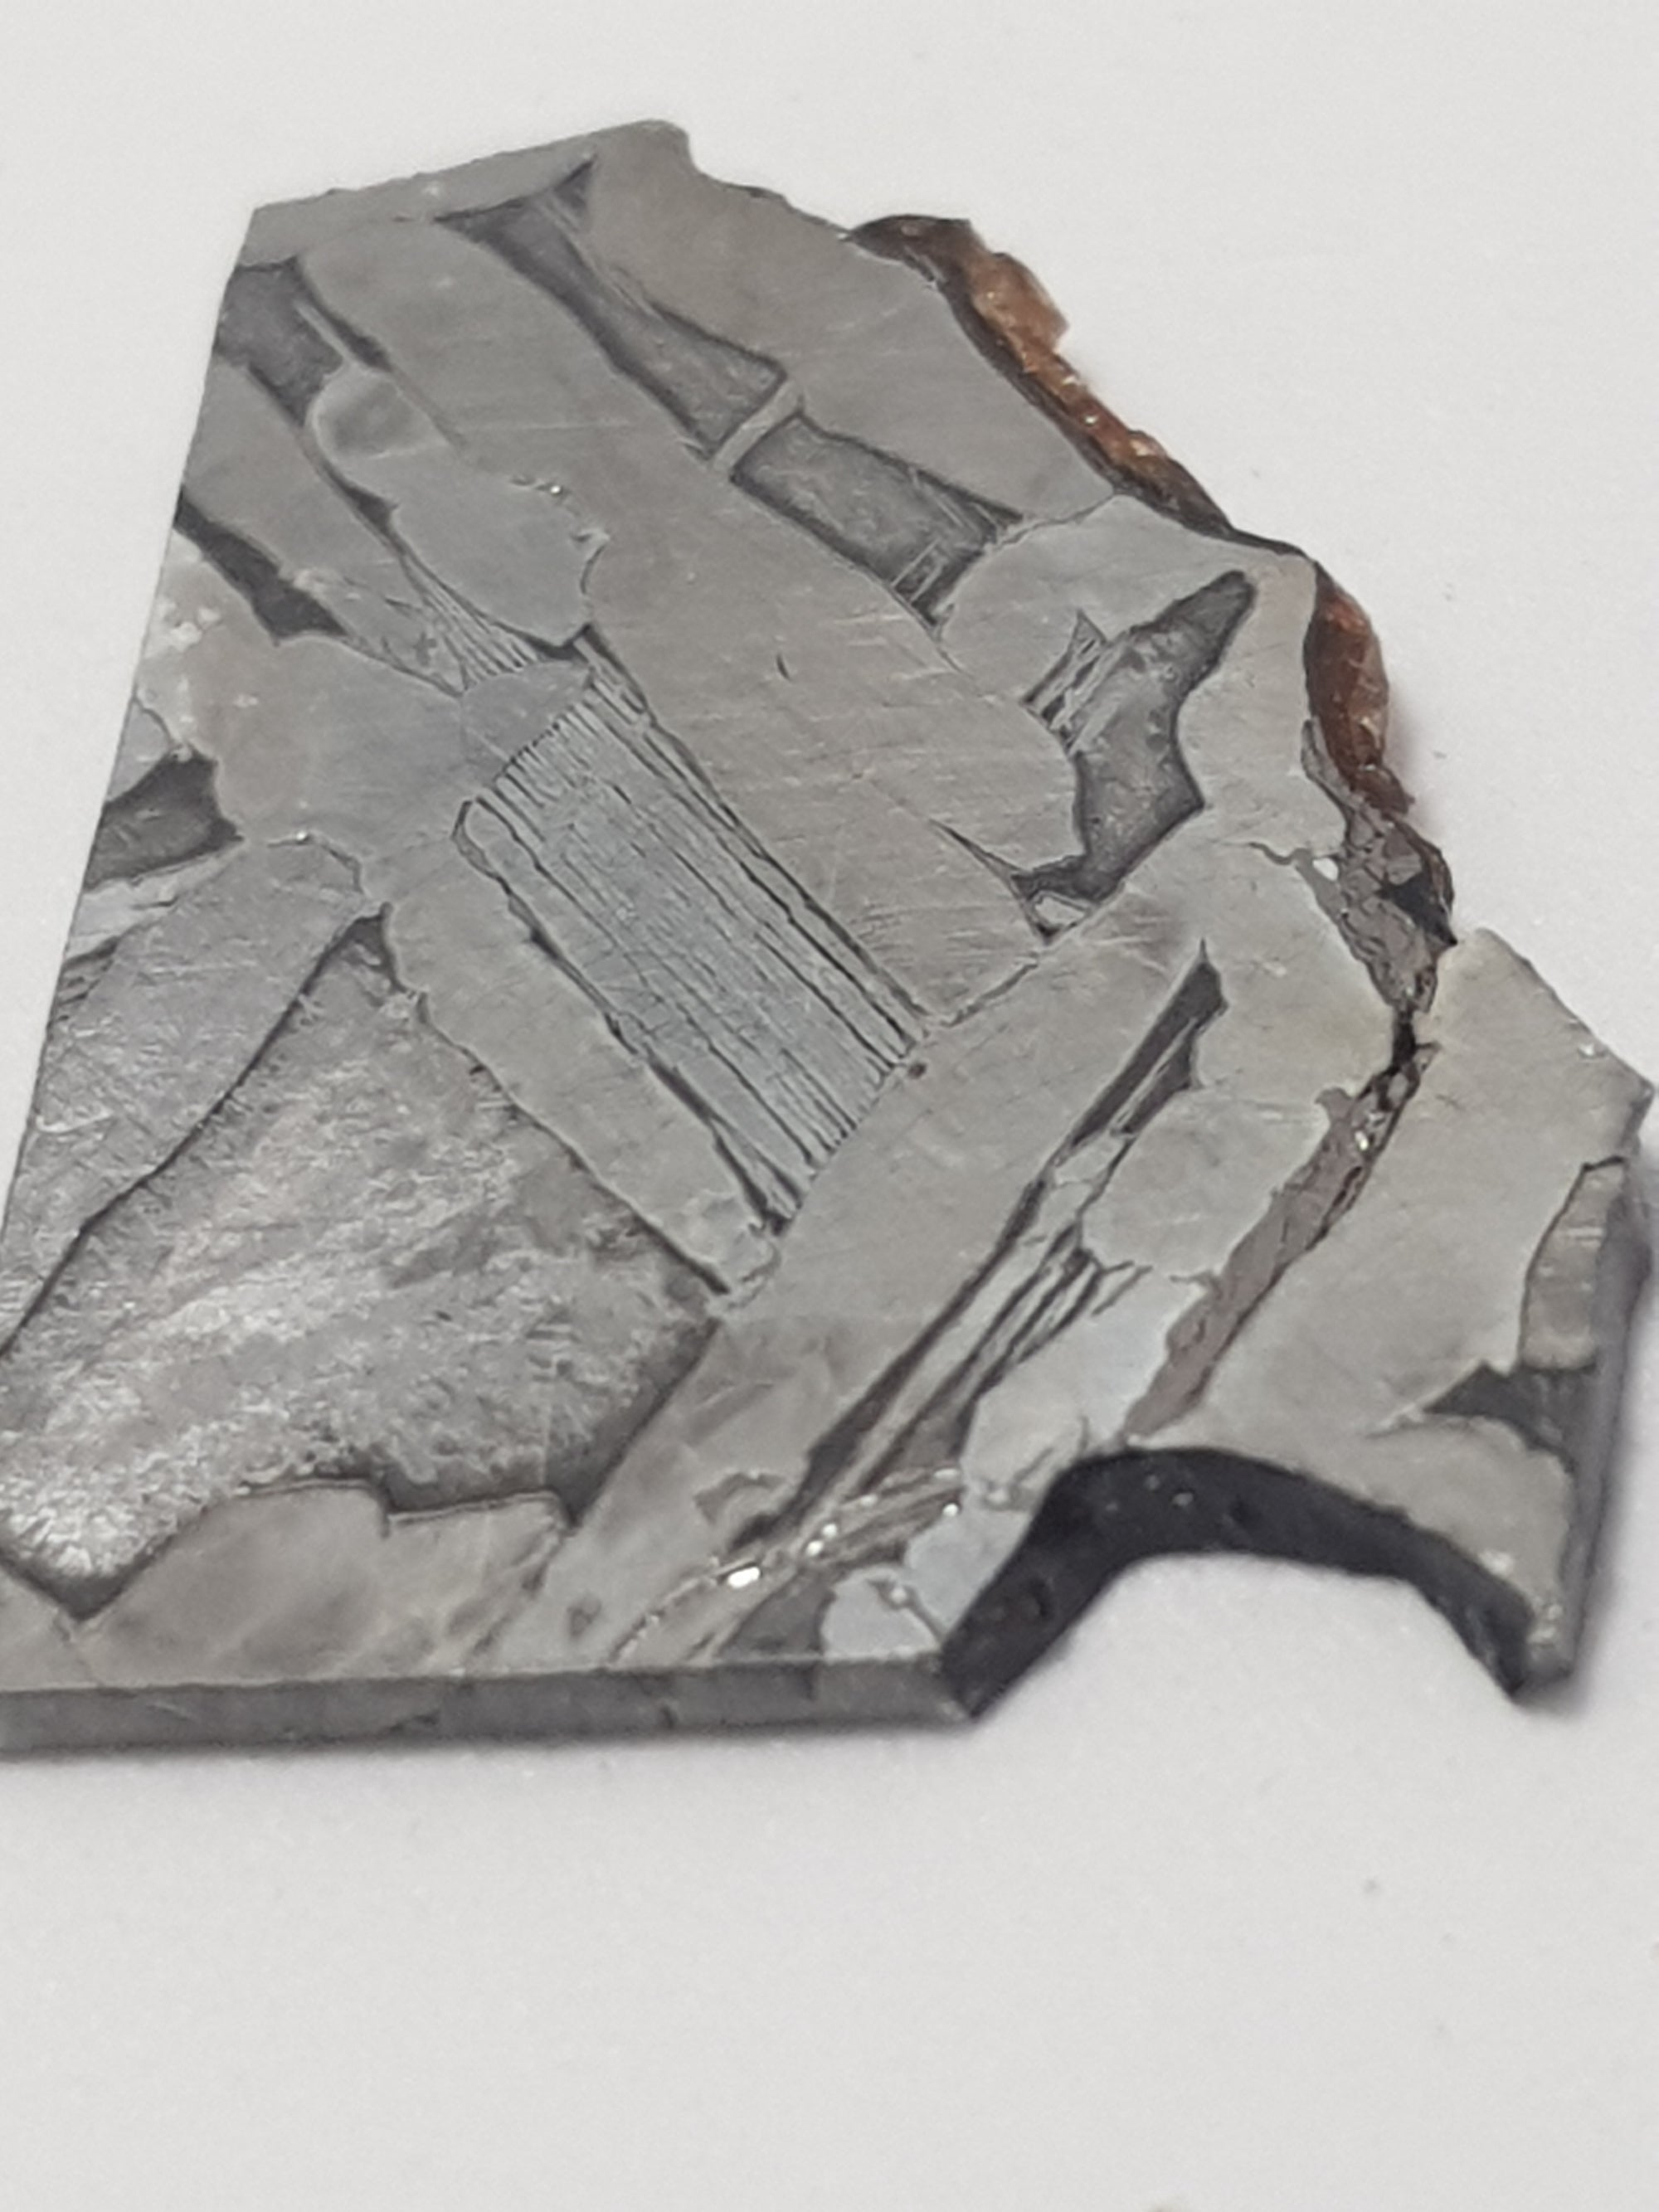 an acid etched cross section of fukang. The sample has straight edges where it has been cut. there is a gap on the bottom right and a rough edge along the top right. The edge on the top right shows signs of remnants of a reddish brown material. These were the locations of olivine crystals which are not present on this sample. The metal has a distinctive widmanstatten pattern.